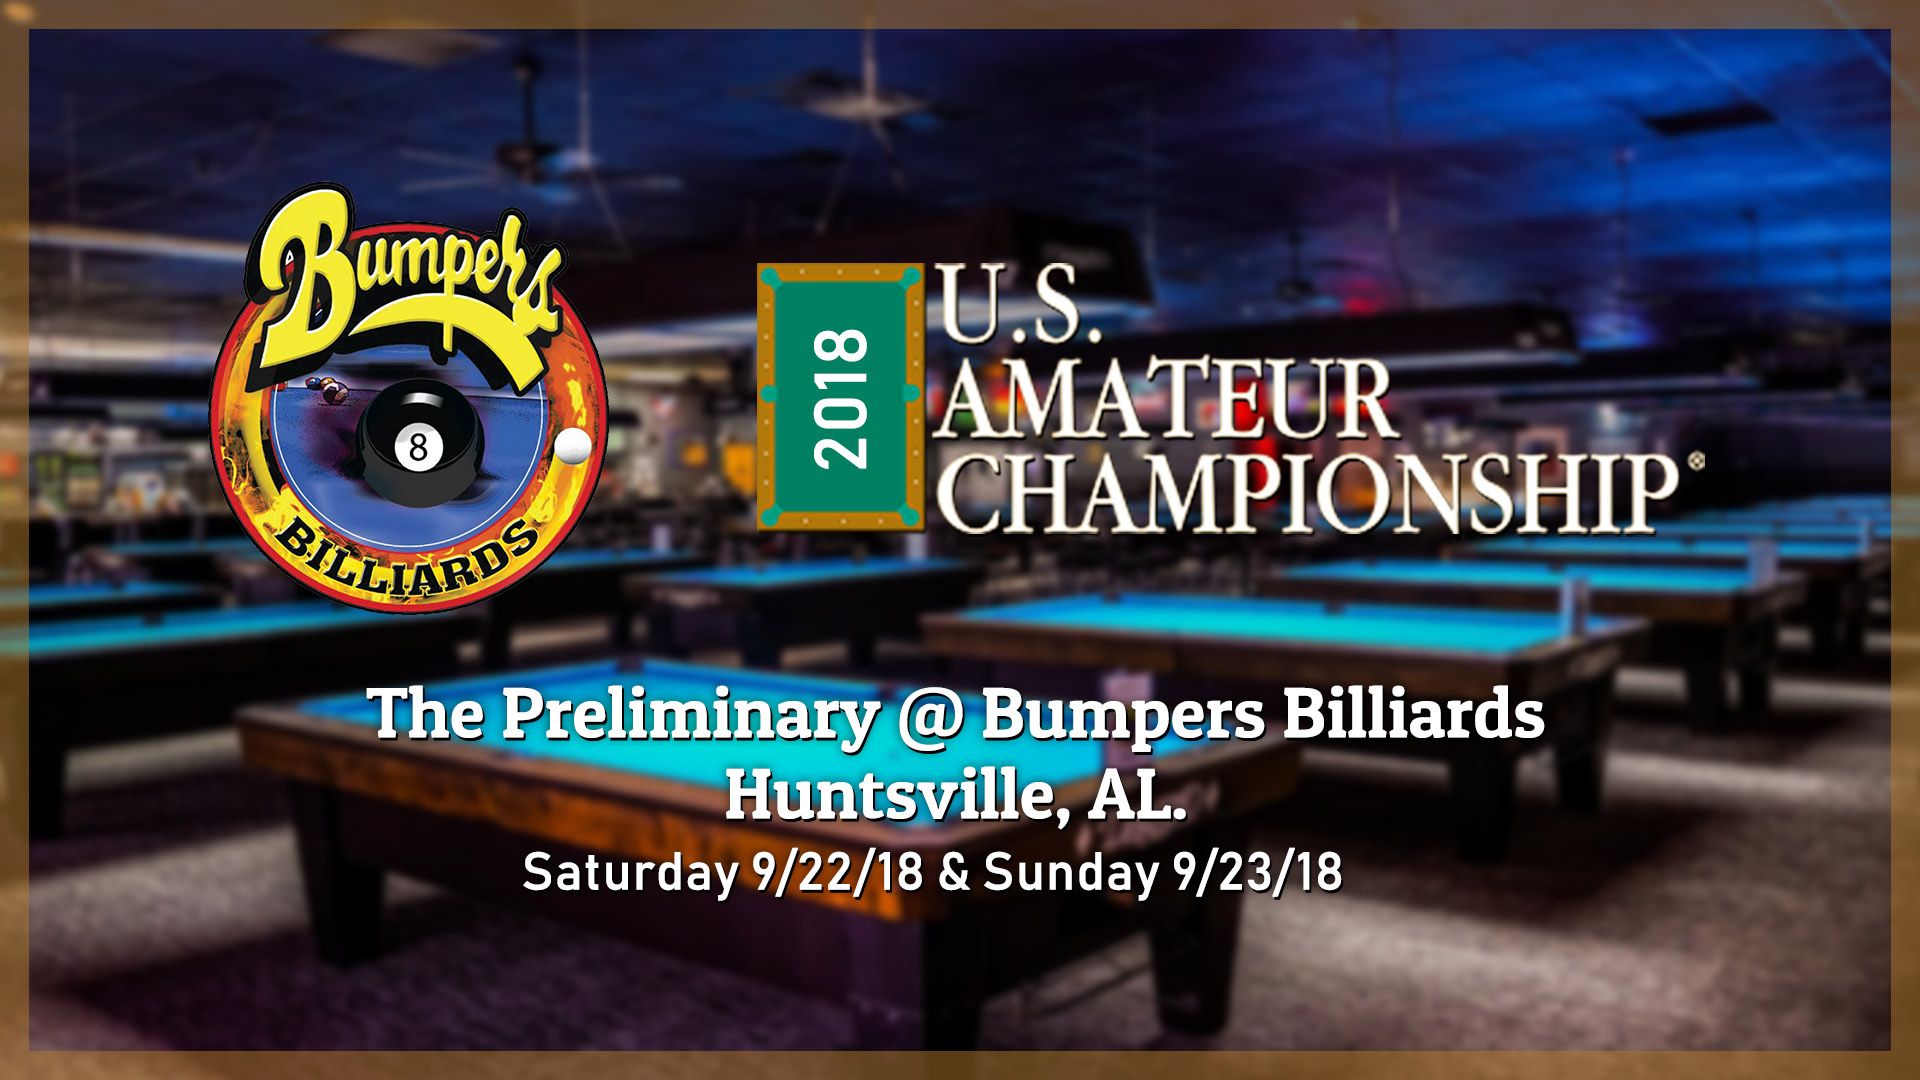 Bumpers Billiards 2018 US Amateur Championship Huntsville AL